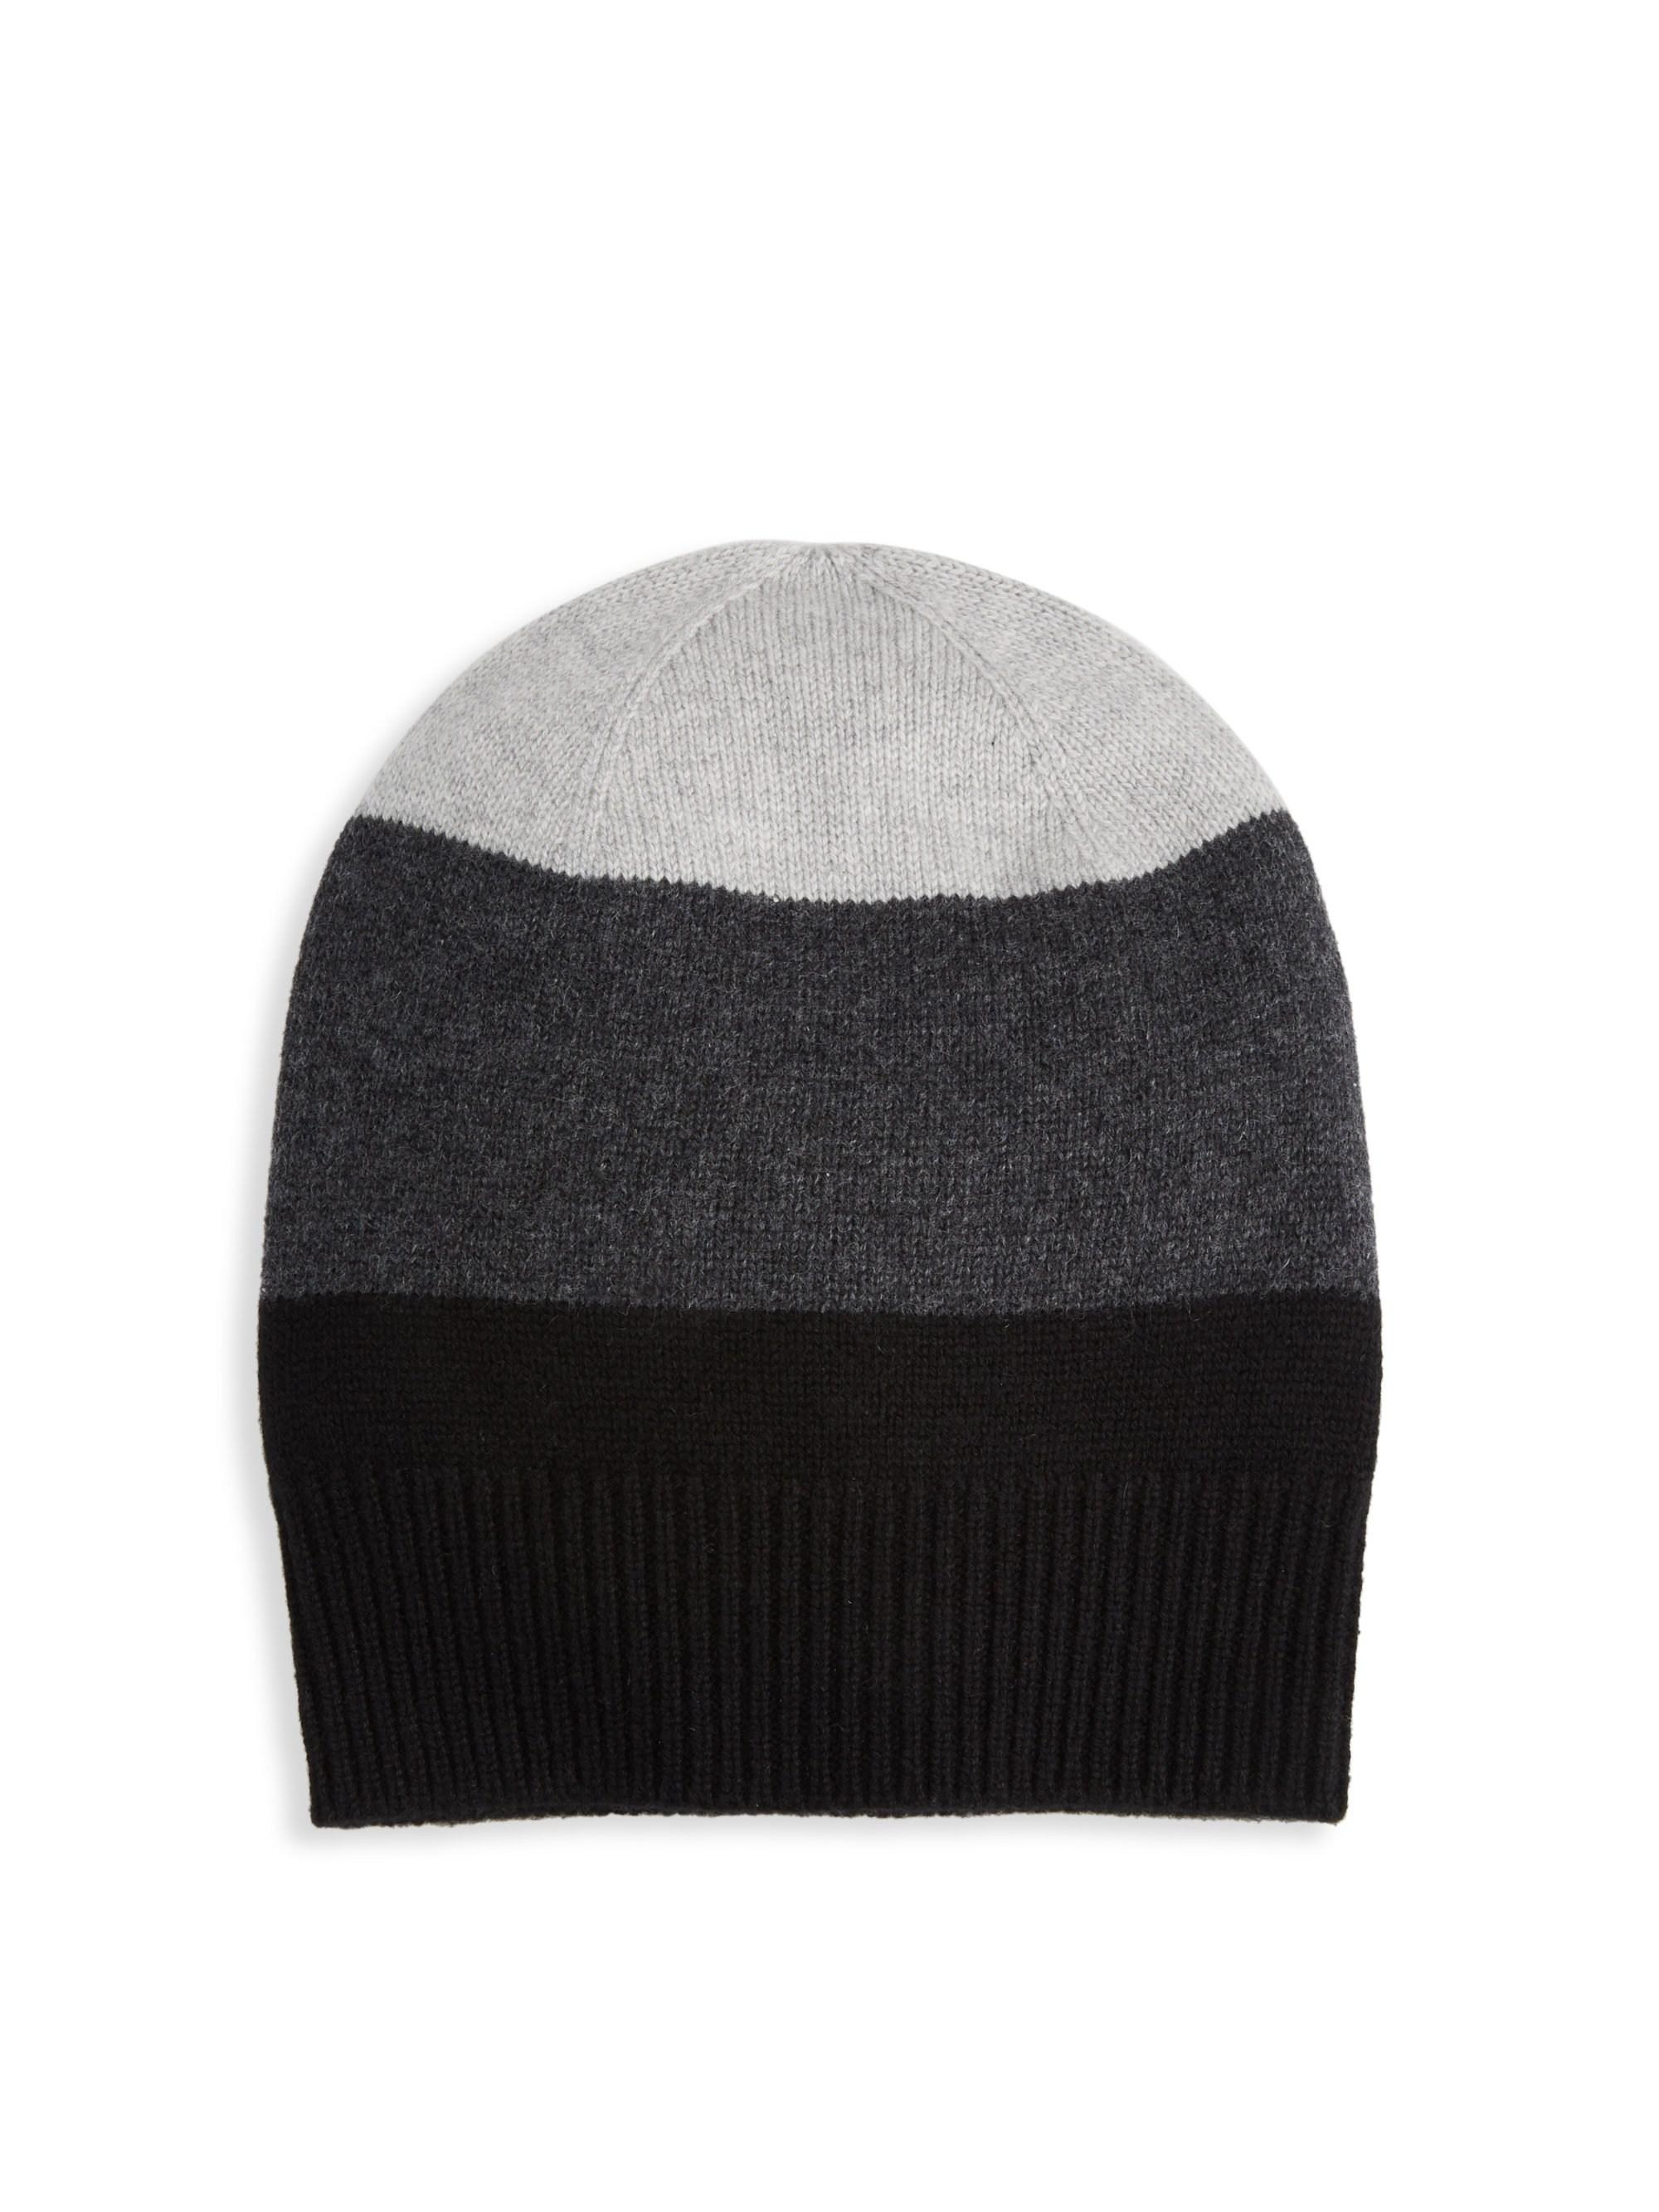 4956d175146a4 Saks Fifth Avenue Collection Cashmere Ombre Stripe Hat in Gray for ...